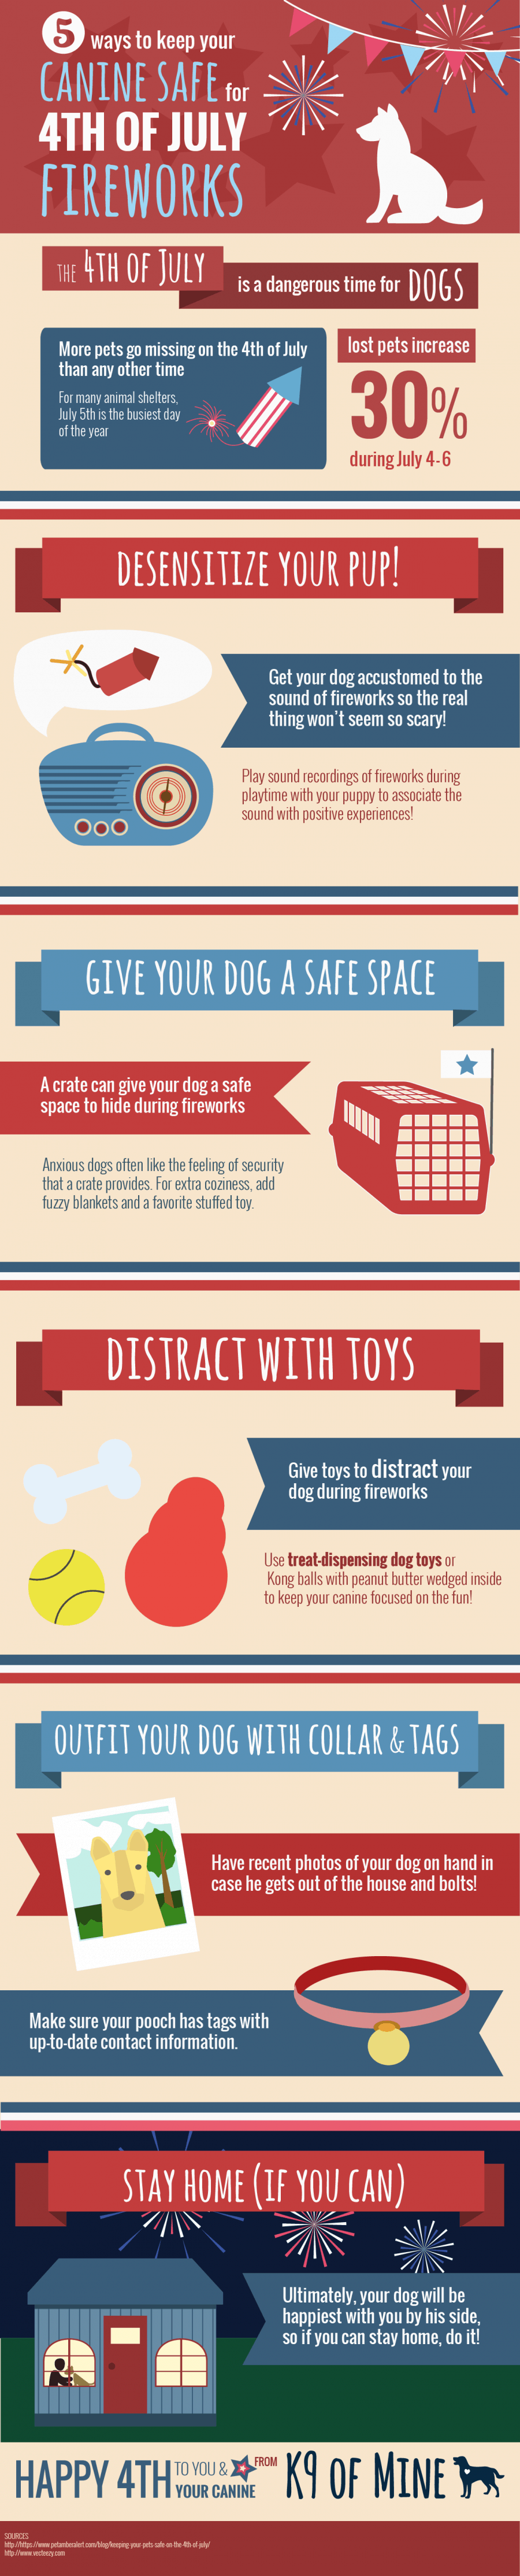 5 Ways to Keep Your Dog Safe During Fireworks #infographic